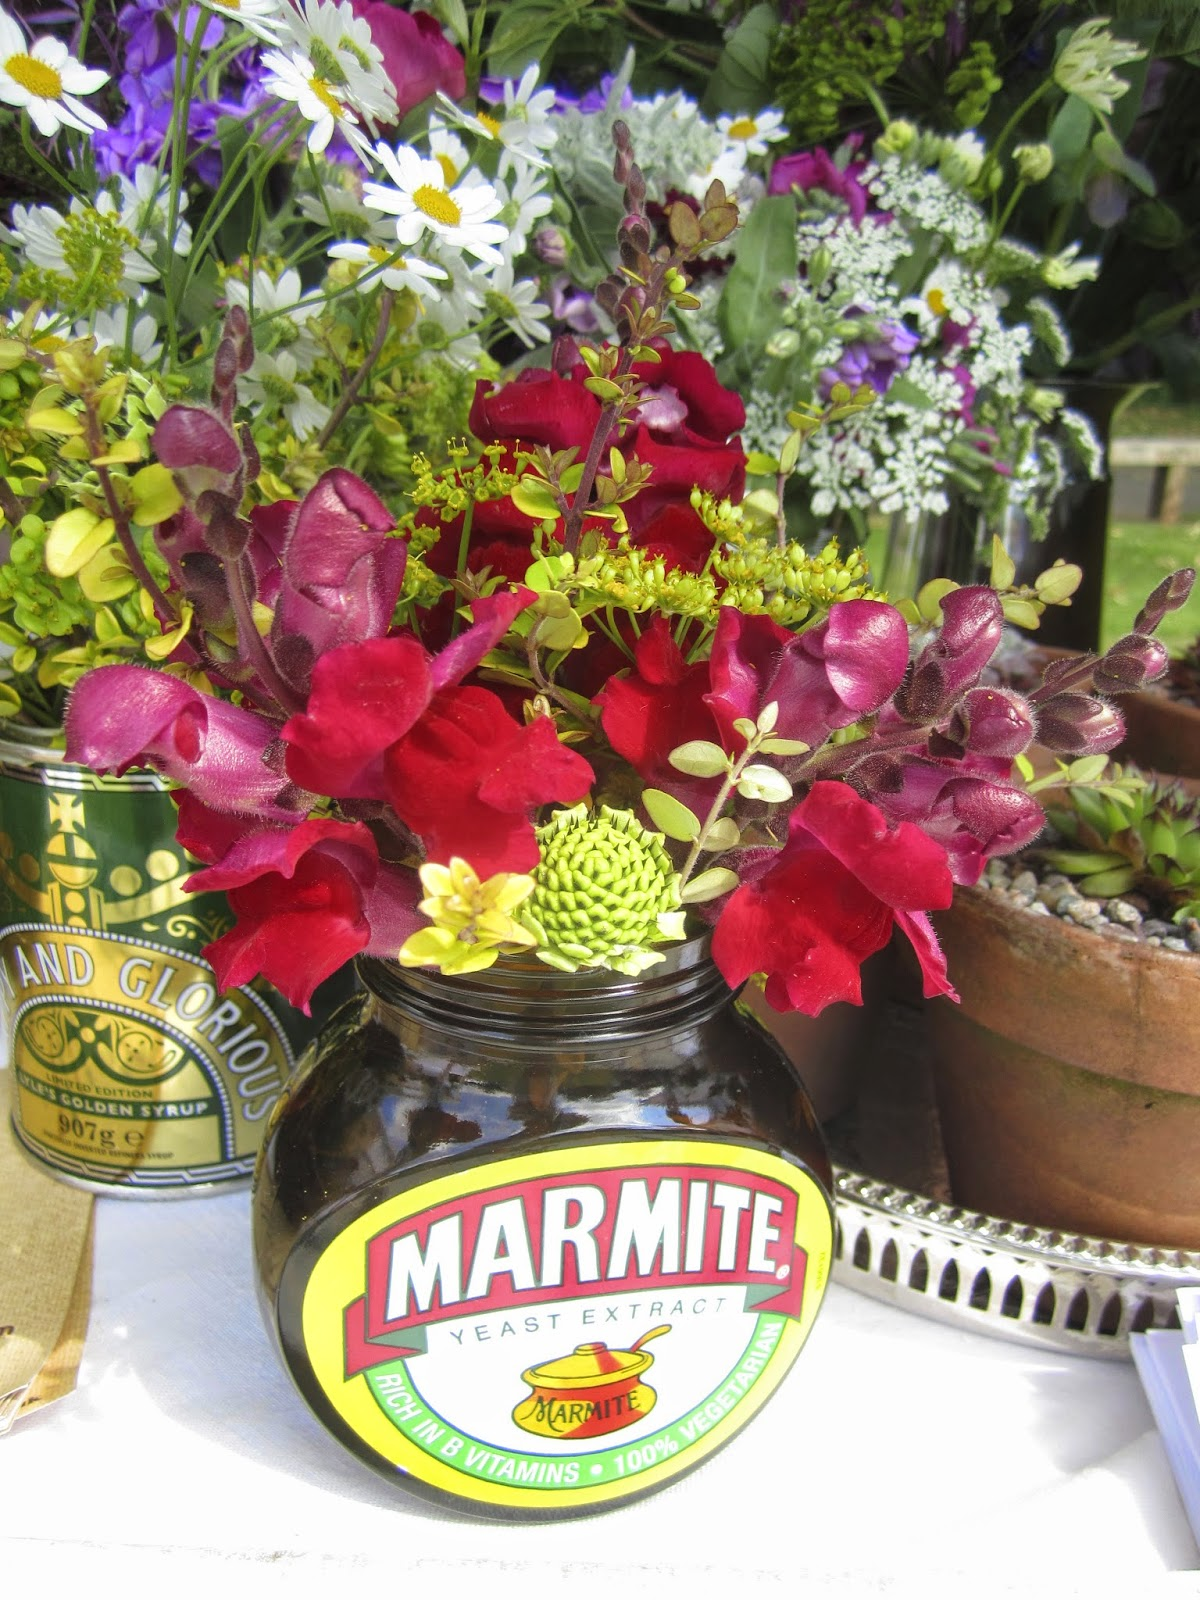 A marmite jar of Tuckshop Flowers.